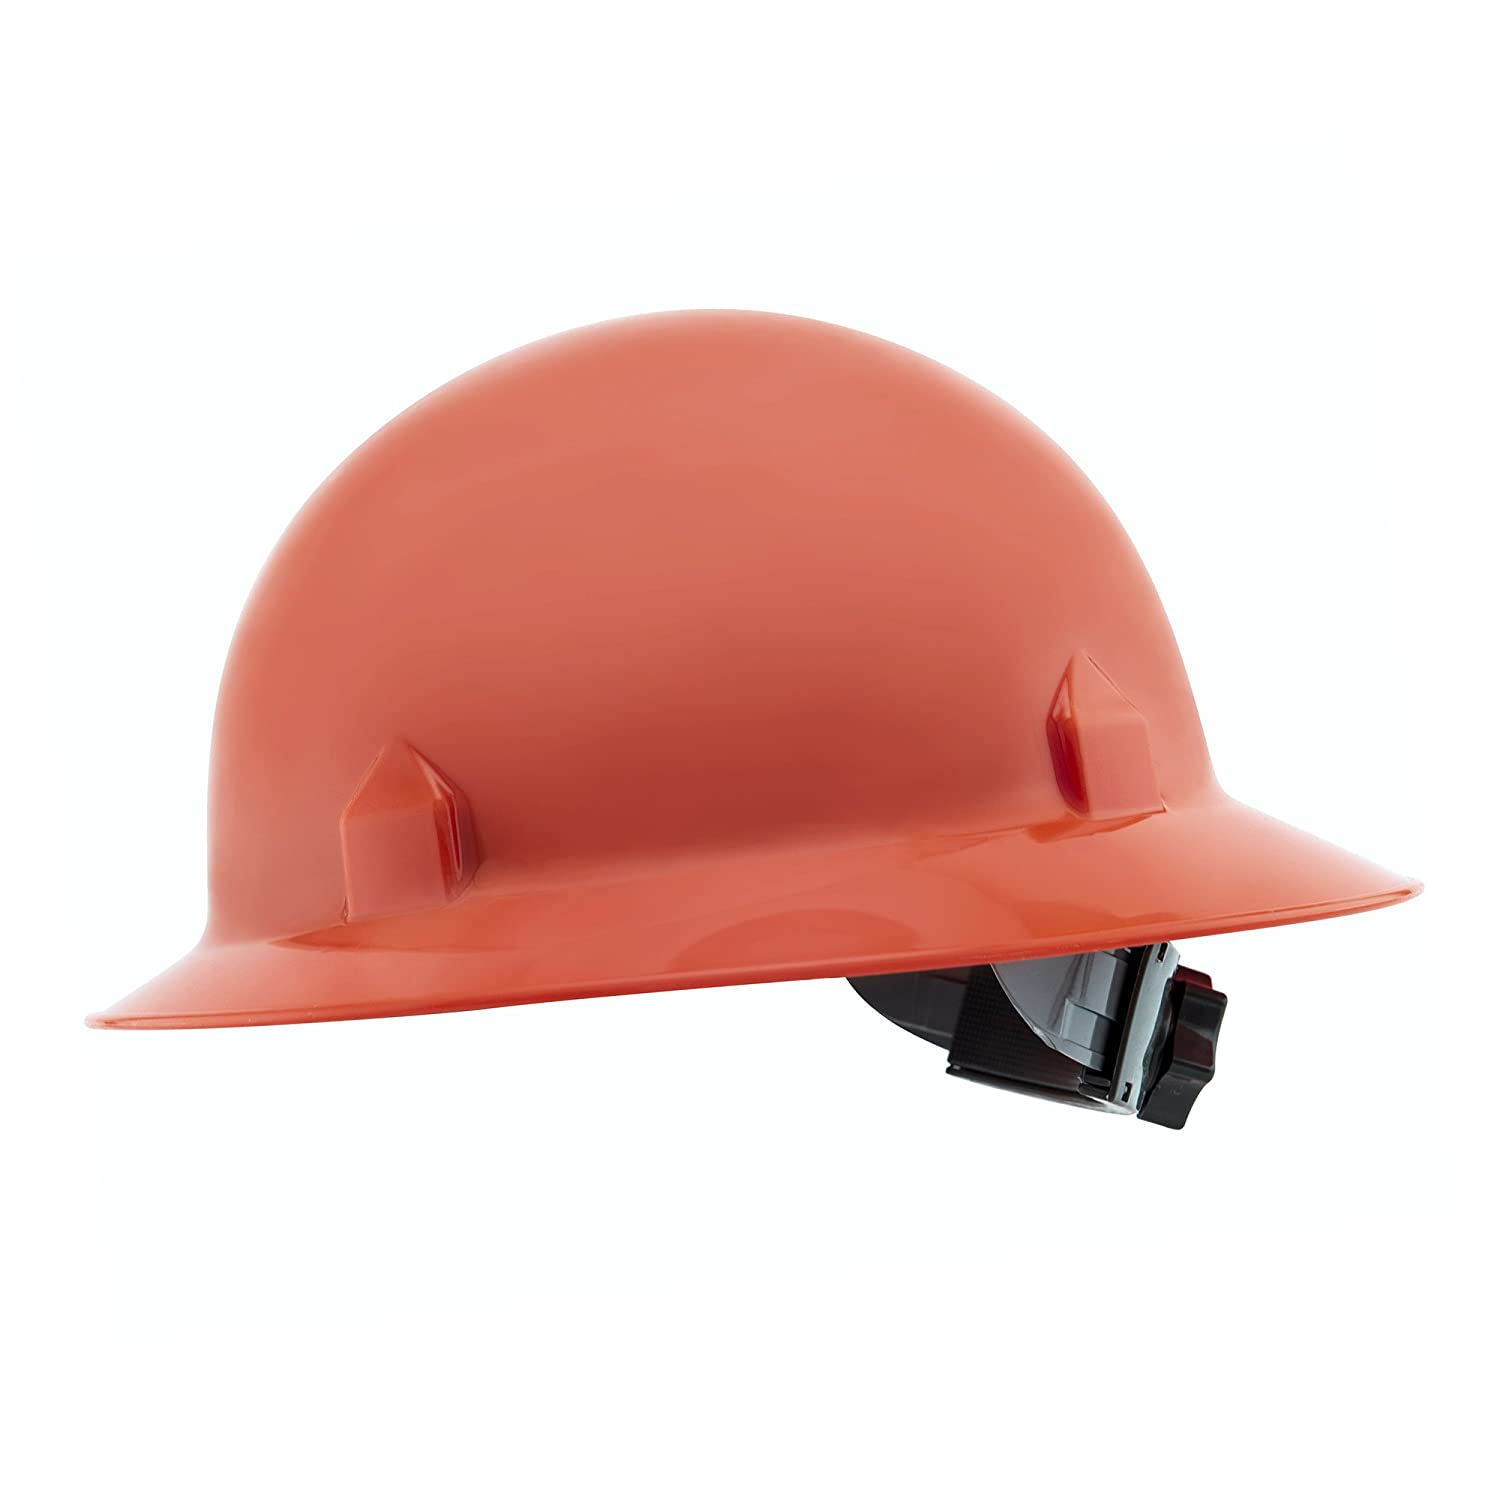 Jackson Safety 20701 Blockhead High Density Polyethylene Hard Hat with 8 Point Ratchet Suspension, Orange (Pack of 10) by Jackson Safety B008D7RQ54